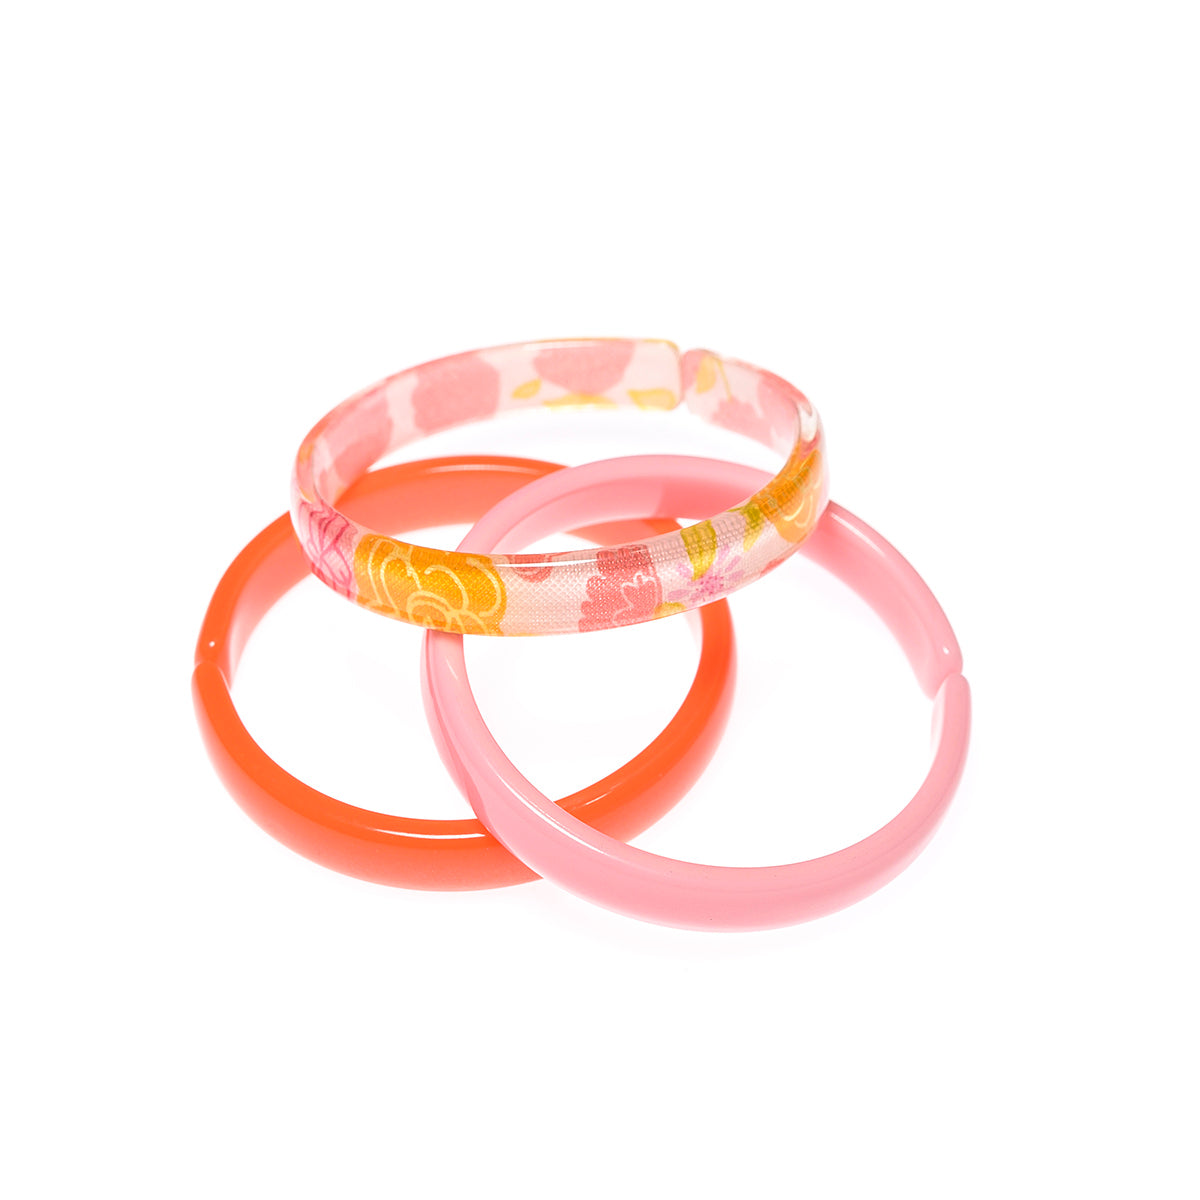 Bracelets Mix - Neon Orange + Light Pink + Floral Print -  Lilies & Roses NY